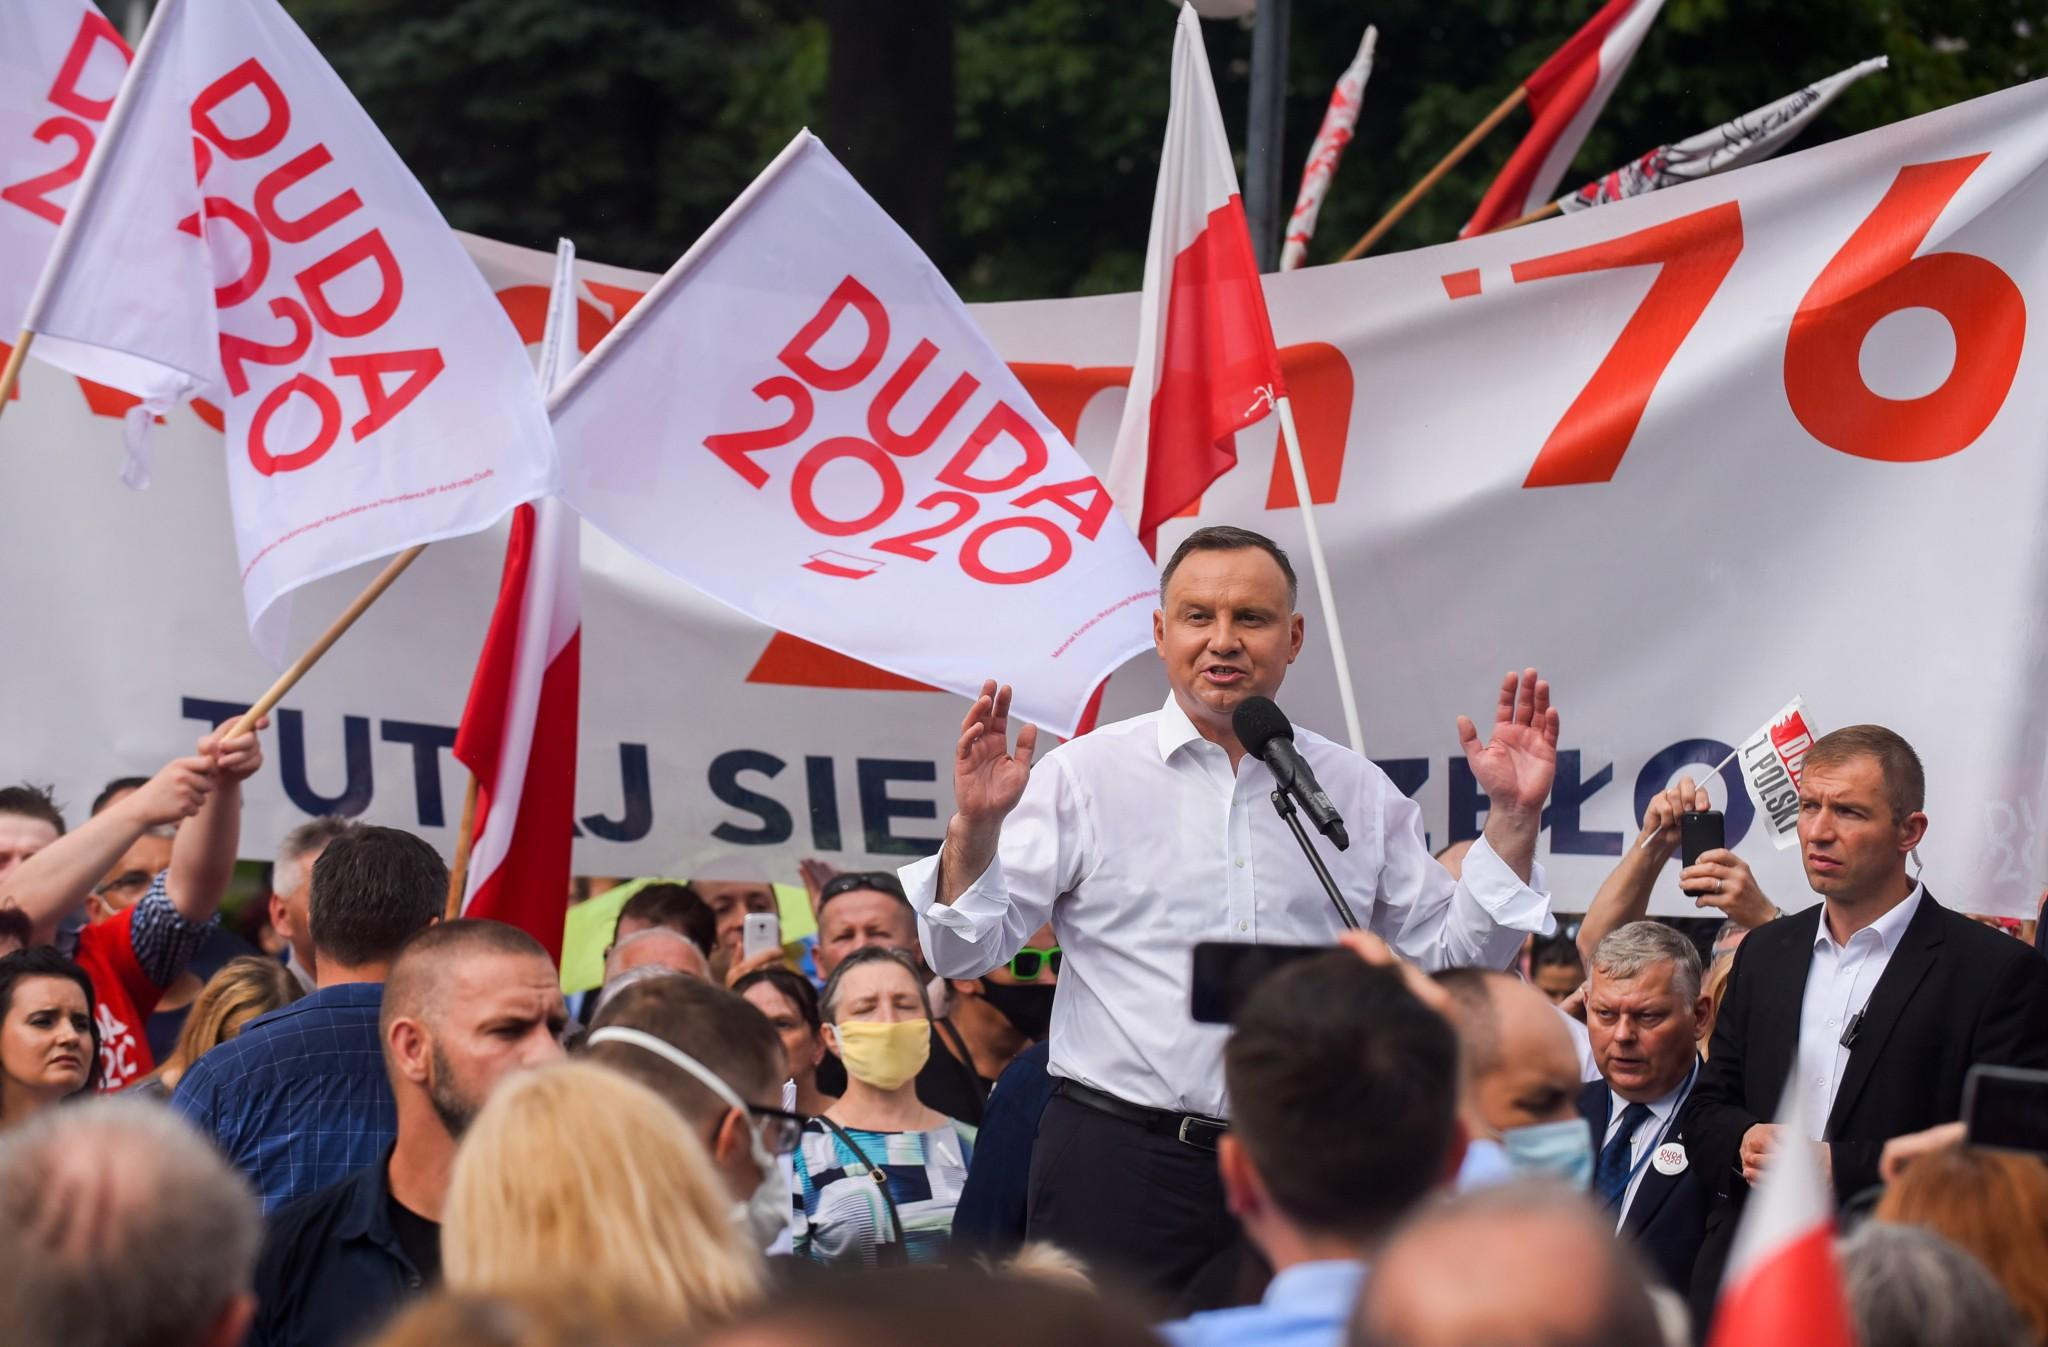 Poland's president hopes a Trump deal will help him win Sunday's election – it may divide the country more thumbnail